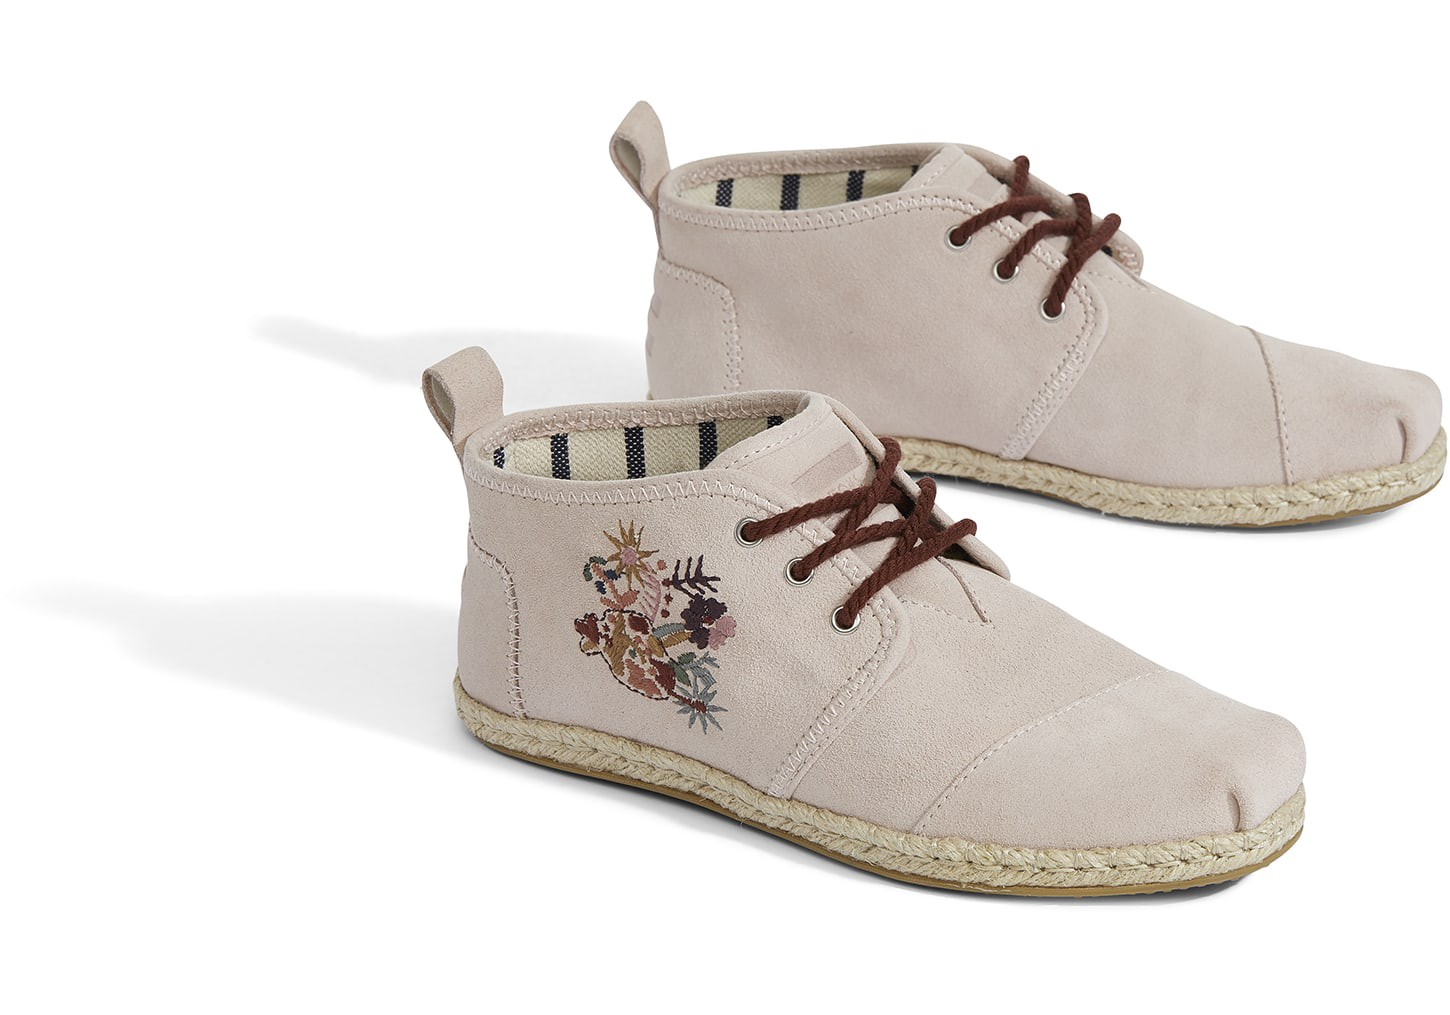 340a452390b57 Toms Blush Suede Floral Women's Bota Boots - 9.5 | Products | Boots ...